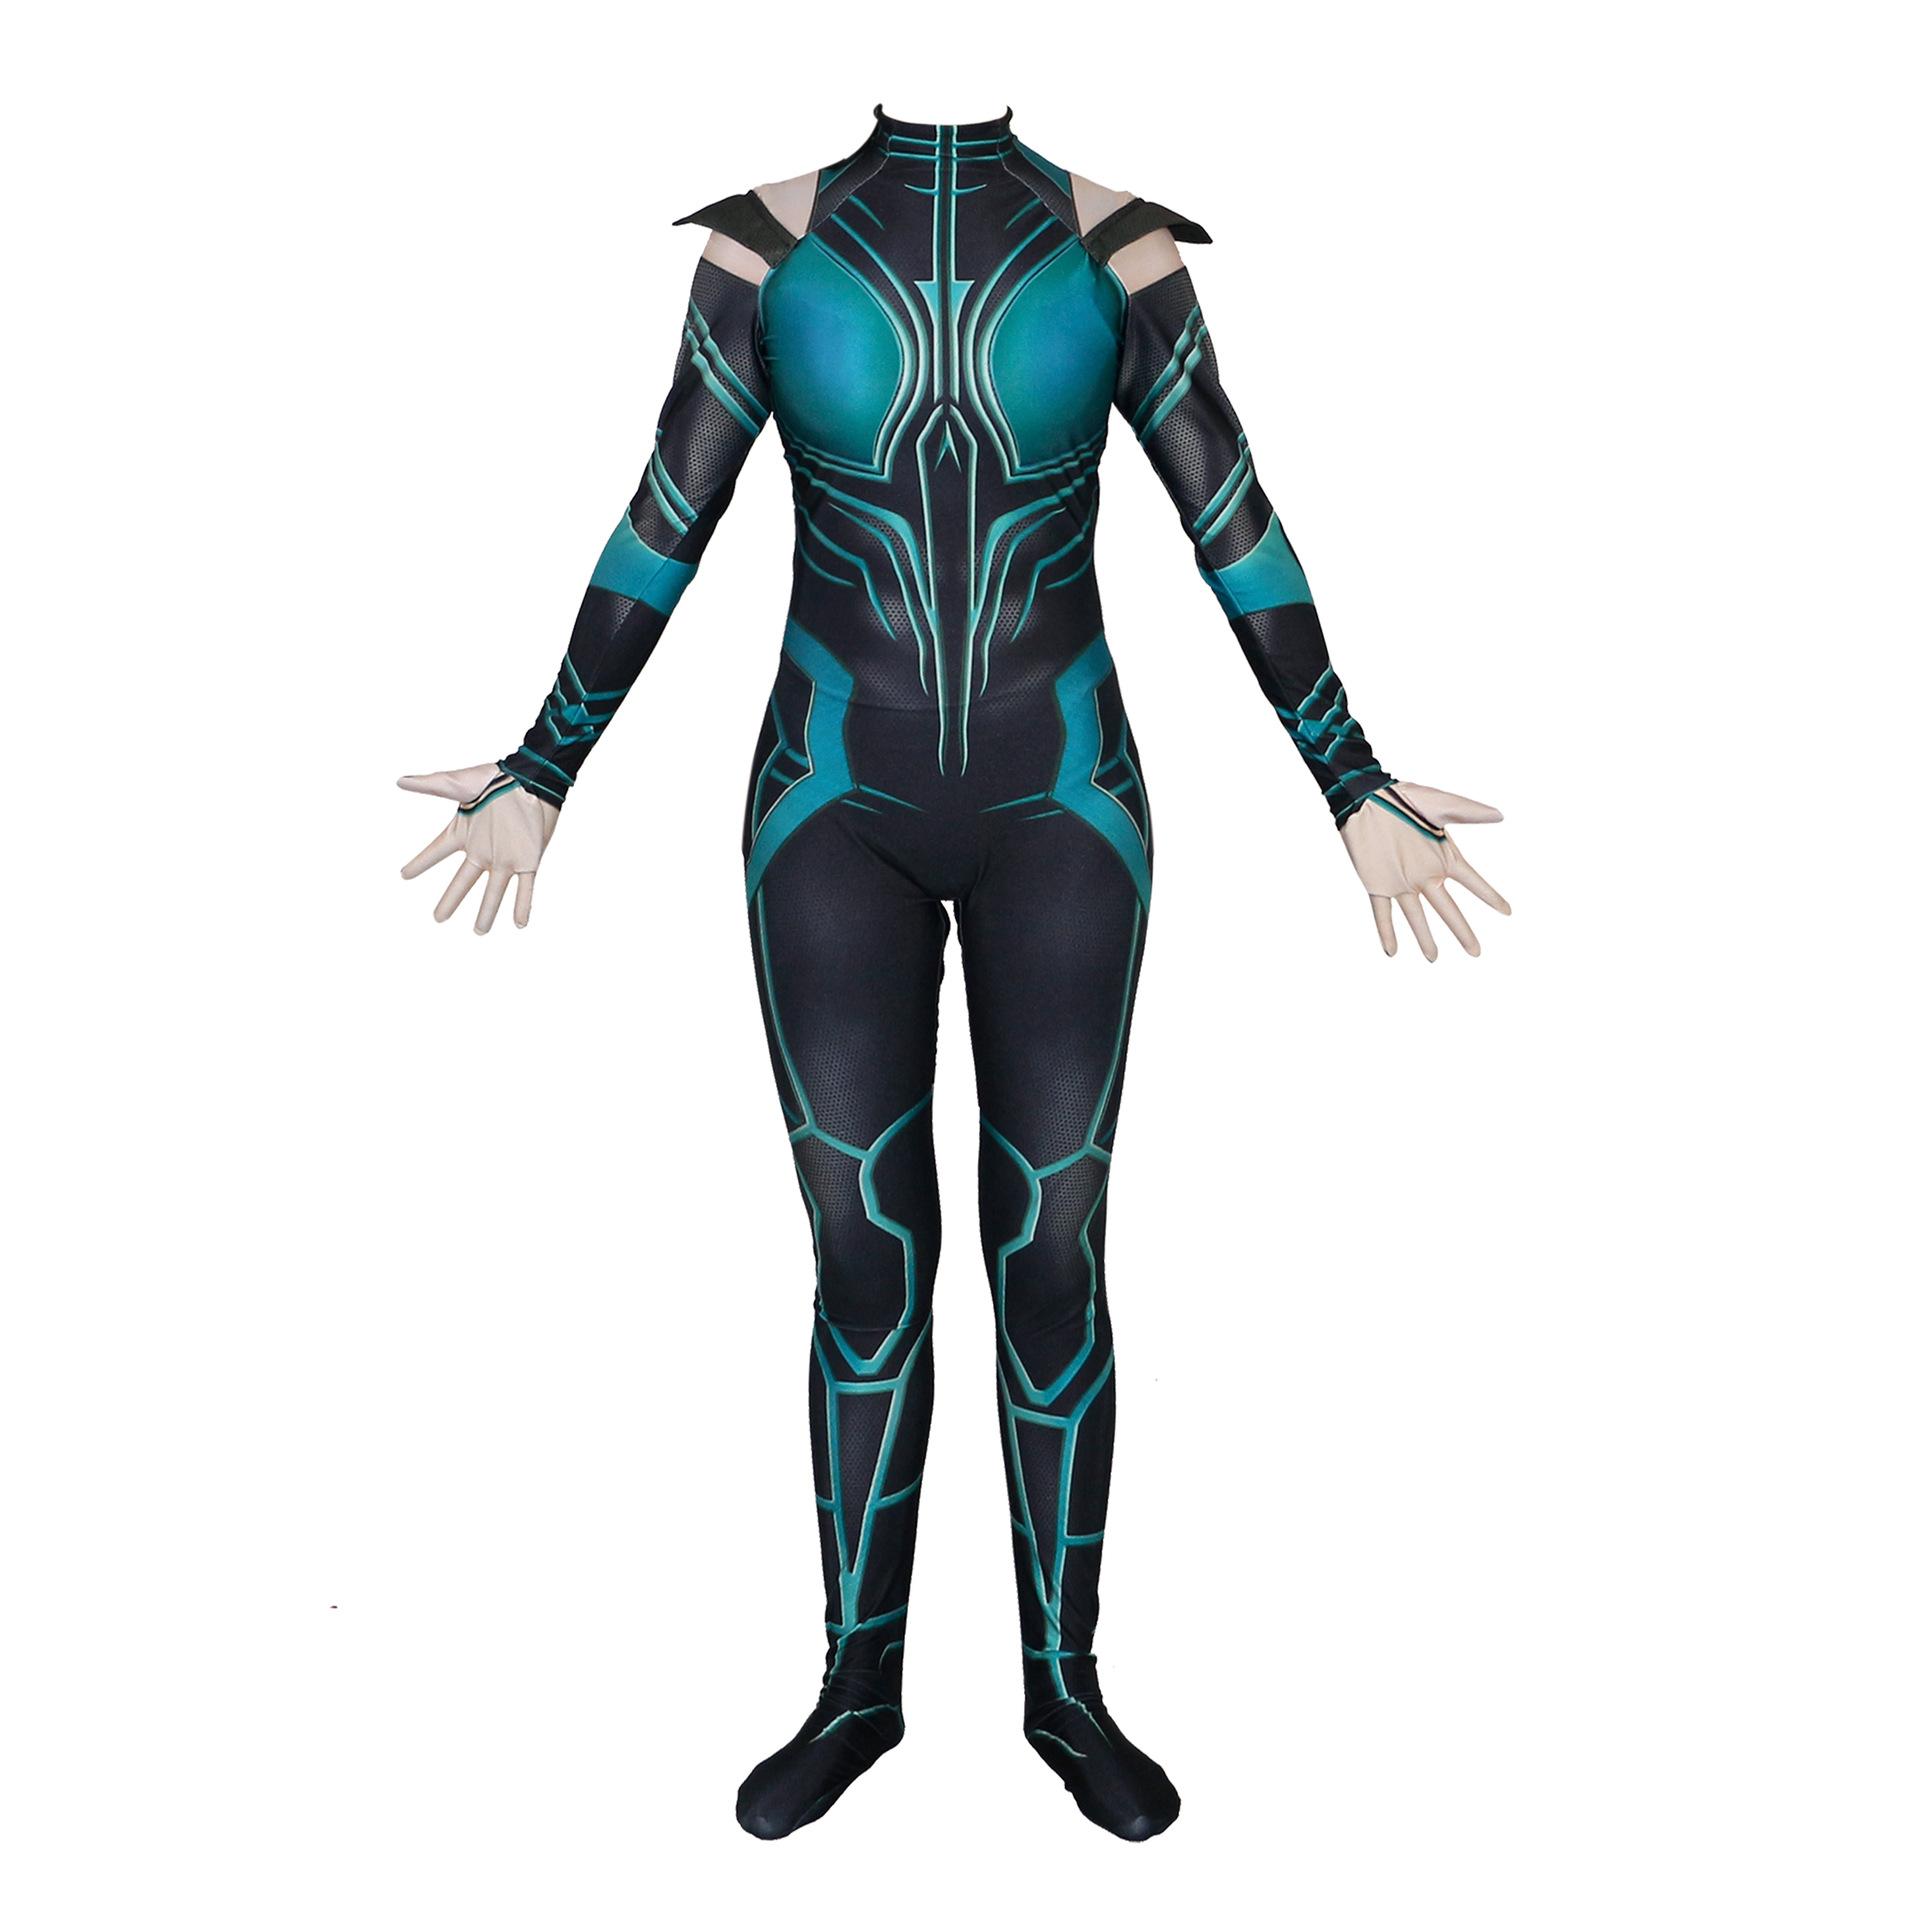 3D Print Movie Thor 3 Ragnarok Hela Trailer Cosplay Costume Jumpsuit for Halloween Sexy Suit Hela Cosplay Halloween Costumes